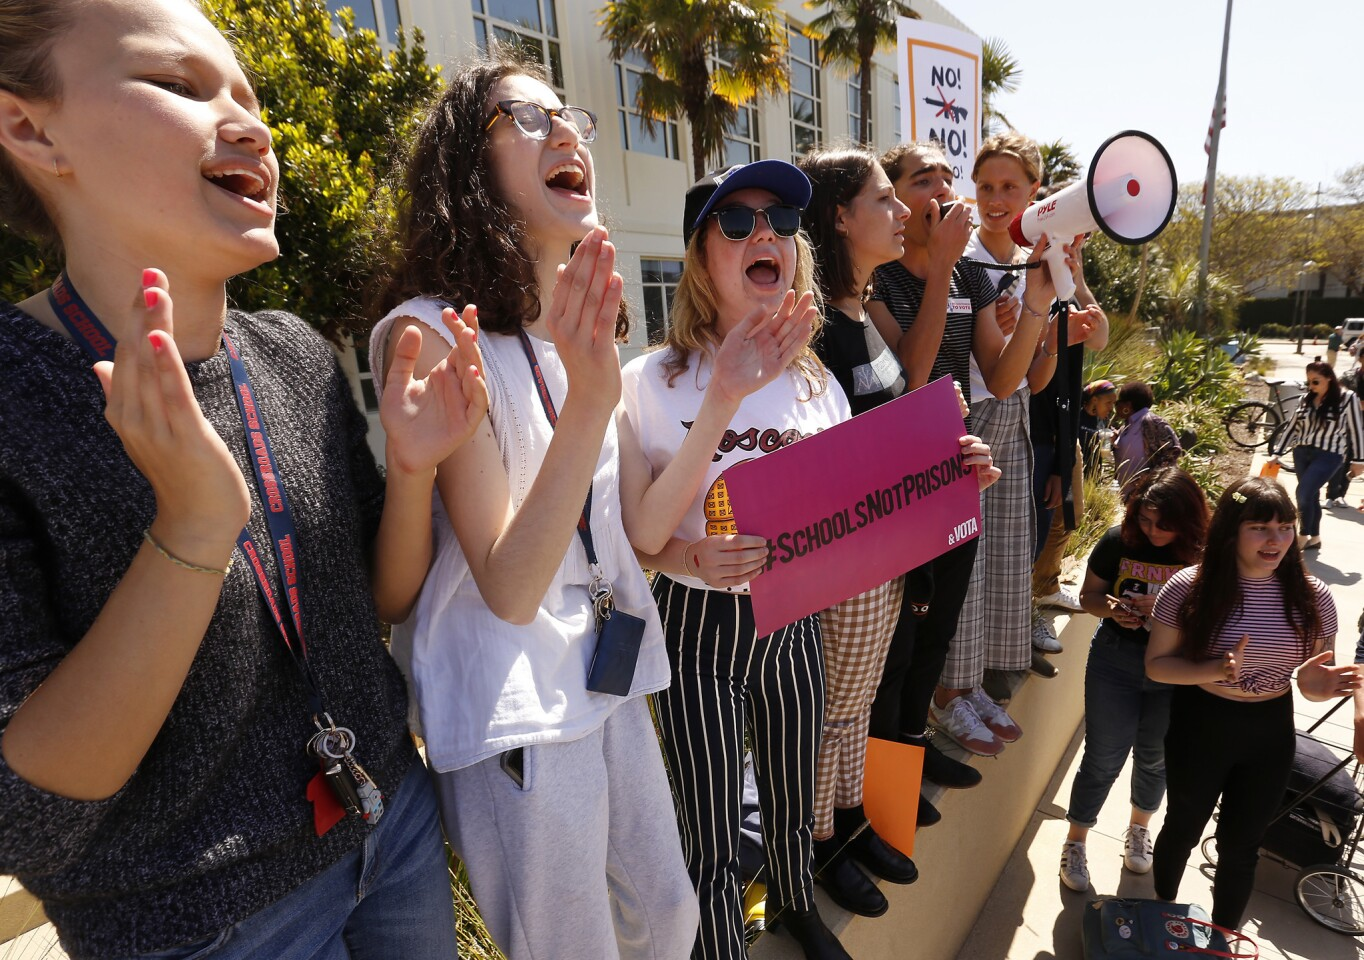 From left, Sara Umgerleider, Kayla Kane, Lily Alexander, and Vivian Predock, from Crossroads High School, joined several hundred students from area High Schools and Middle Schools as they coverged on Santa Monica City Hall to mark the 19th anniversary of the Columbine High School massacre.